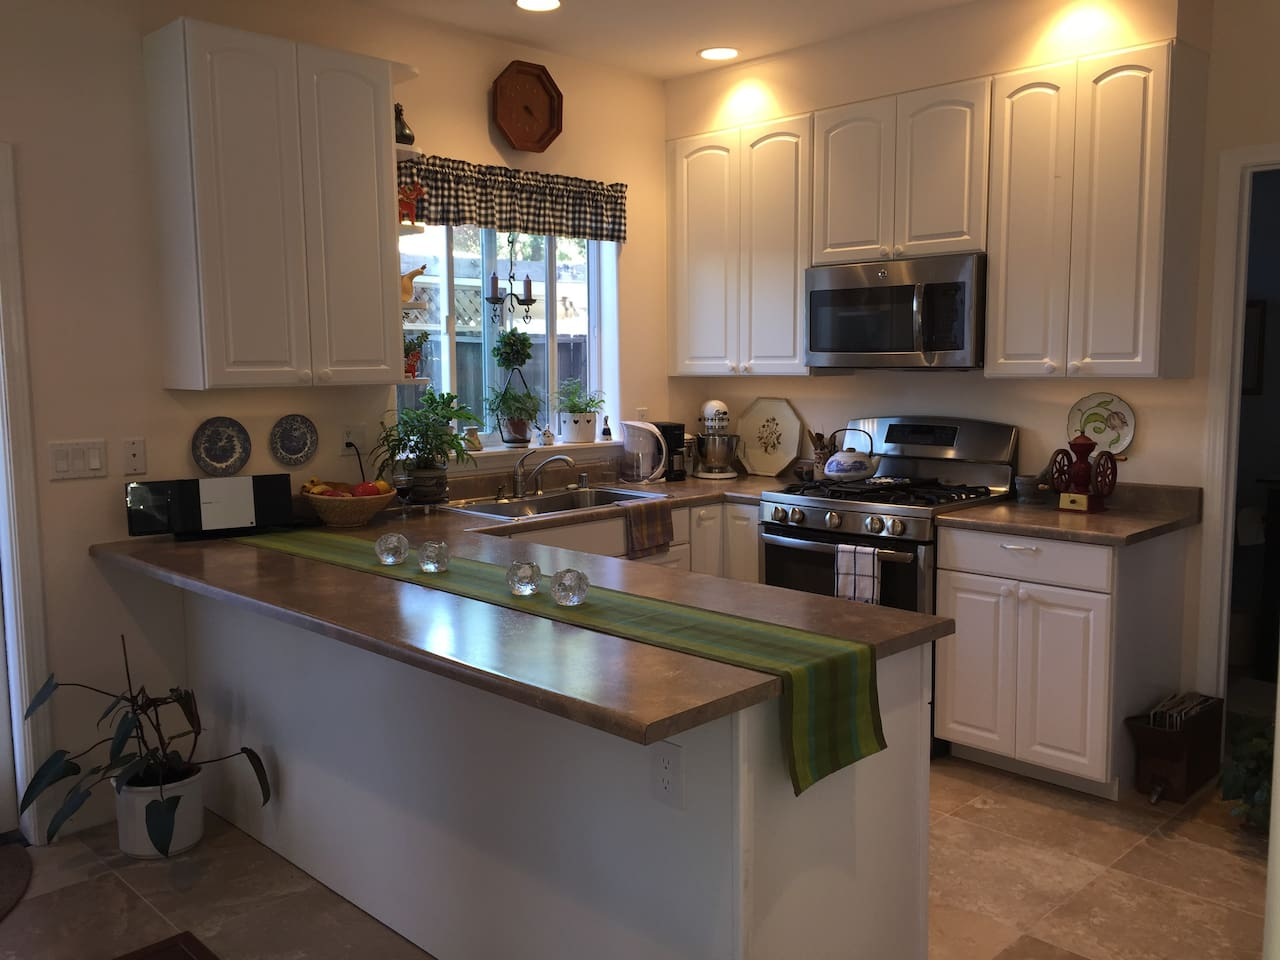 U-shaped kitchen counter with gas range, microwave and tile floor.